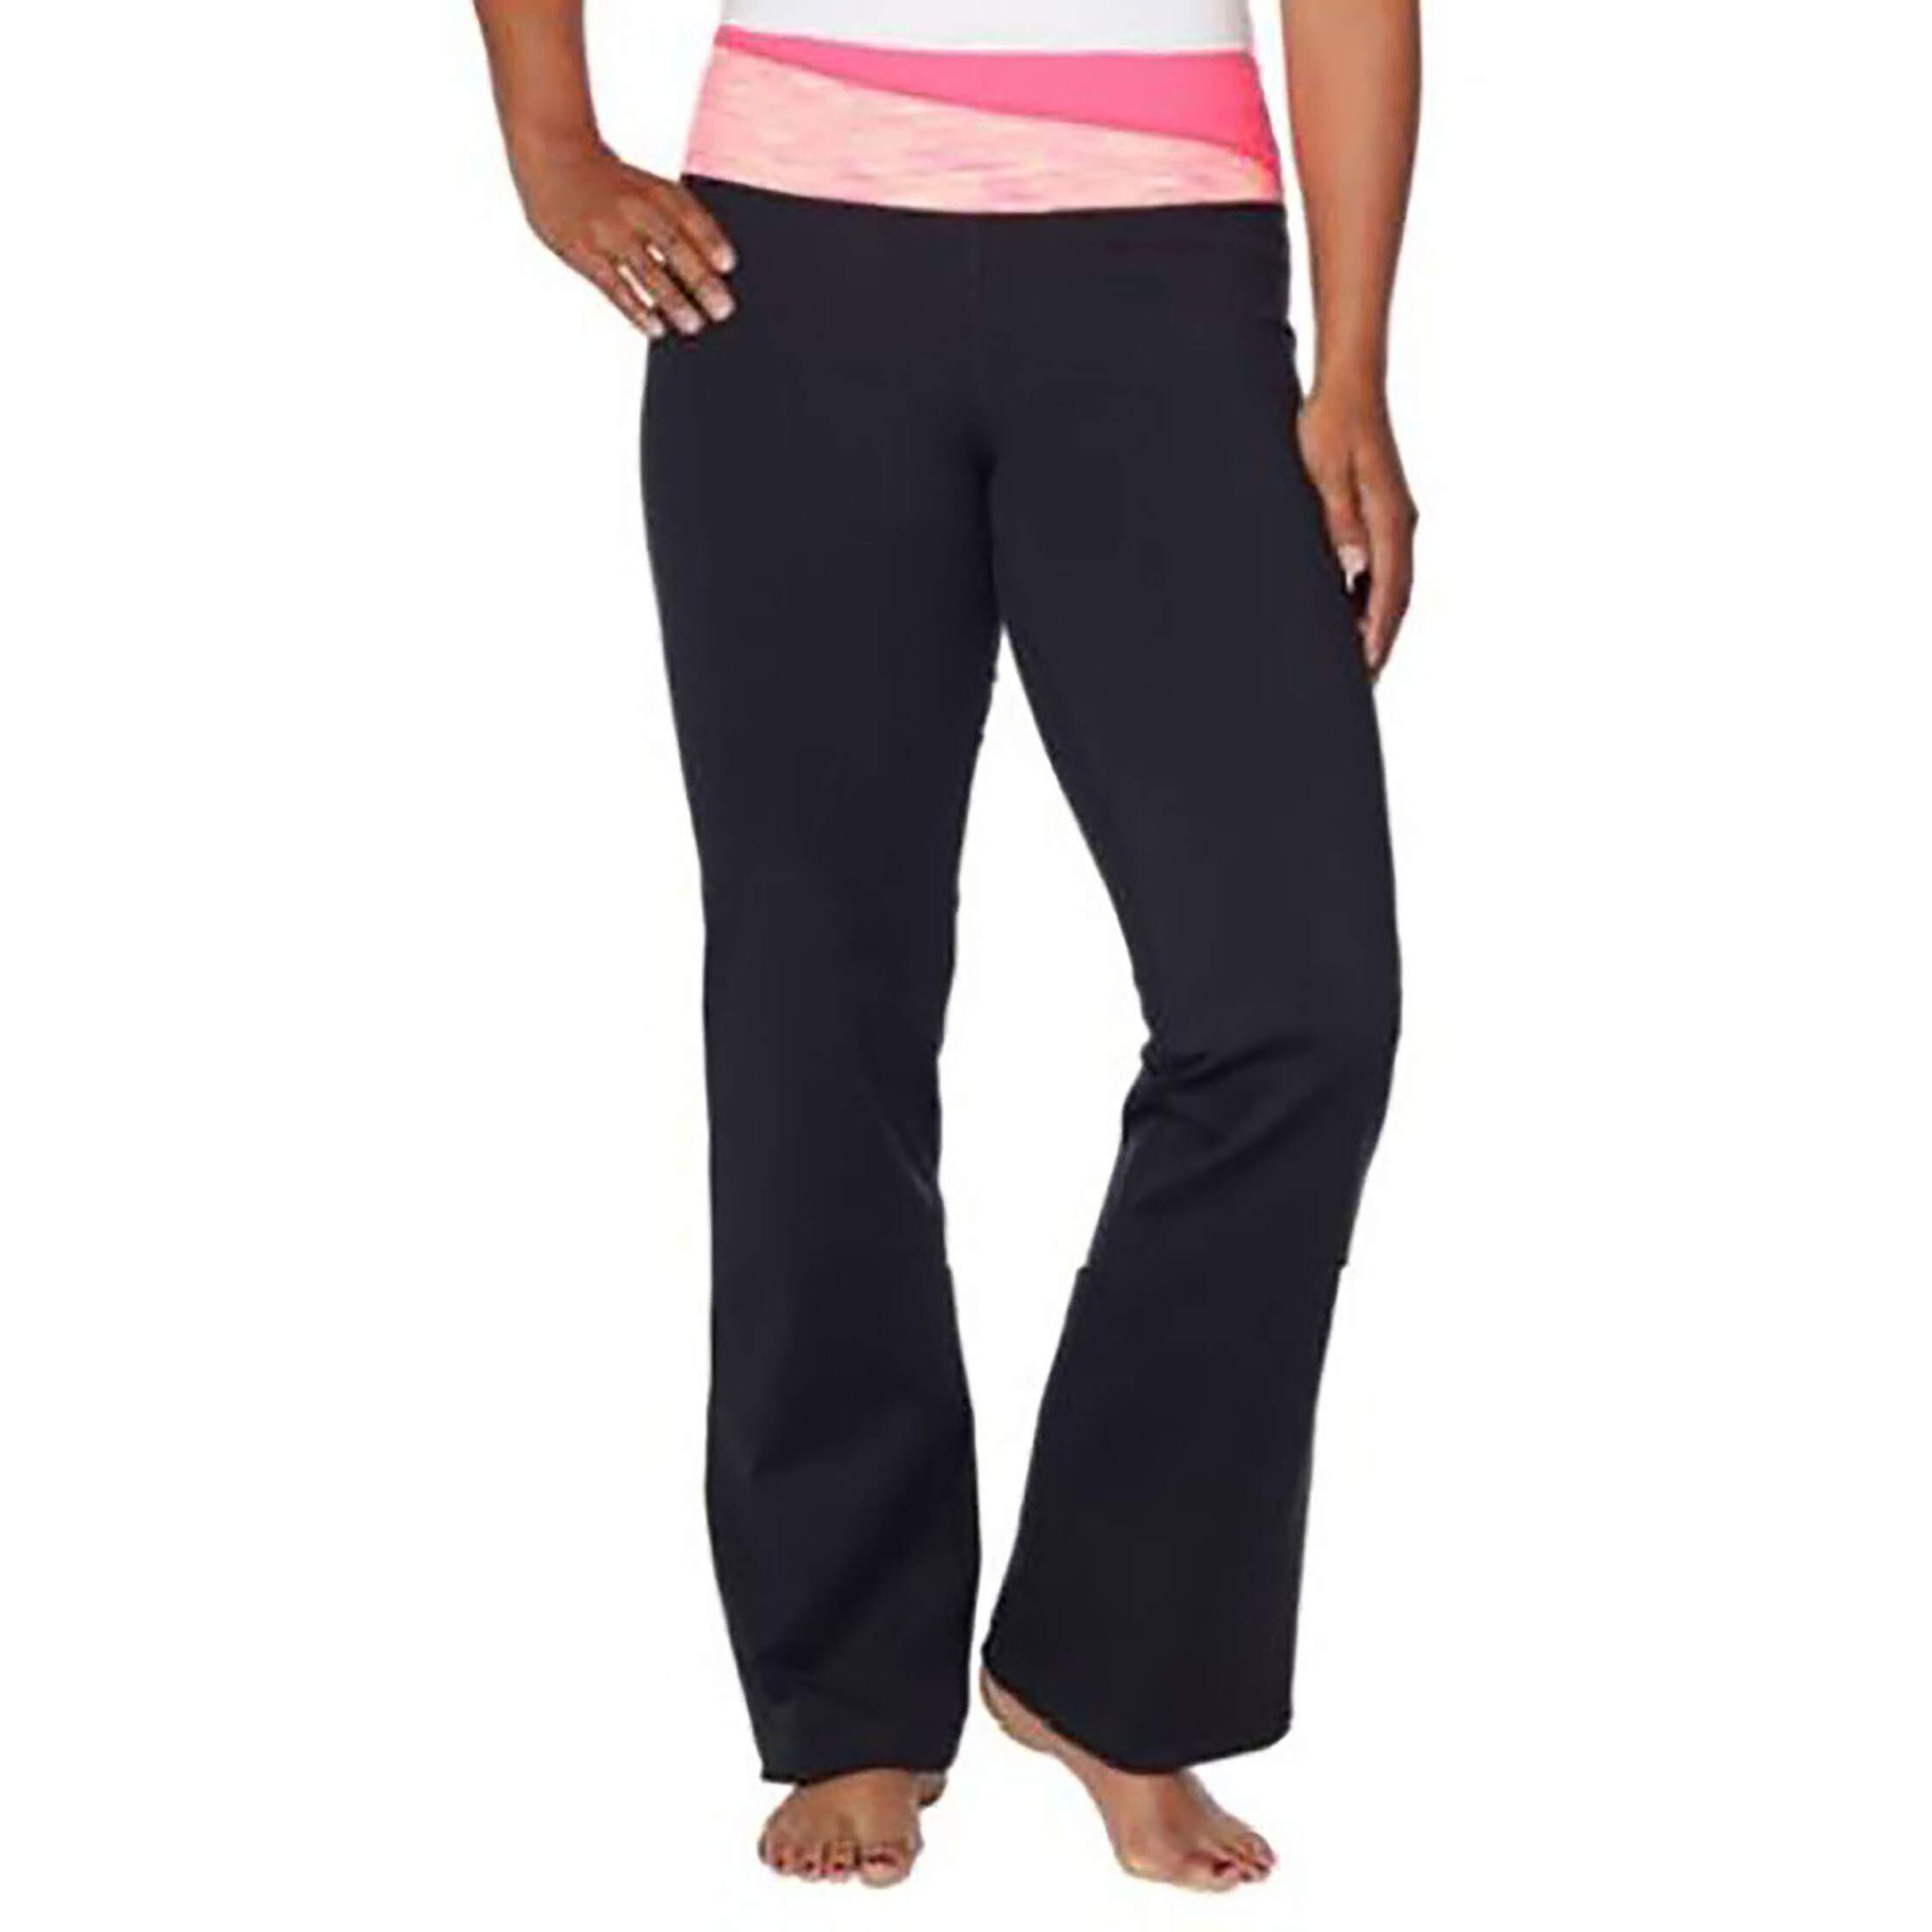 2ec96802893 Shop Kirkland Signature Women s Full Length Stretch Yoga Athletic Pant -  Free Shipping On Orders Over  45 - Overstock - 16077829